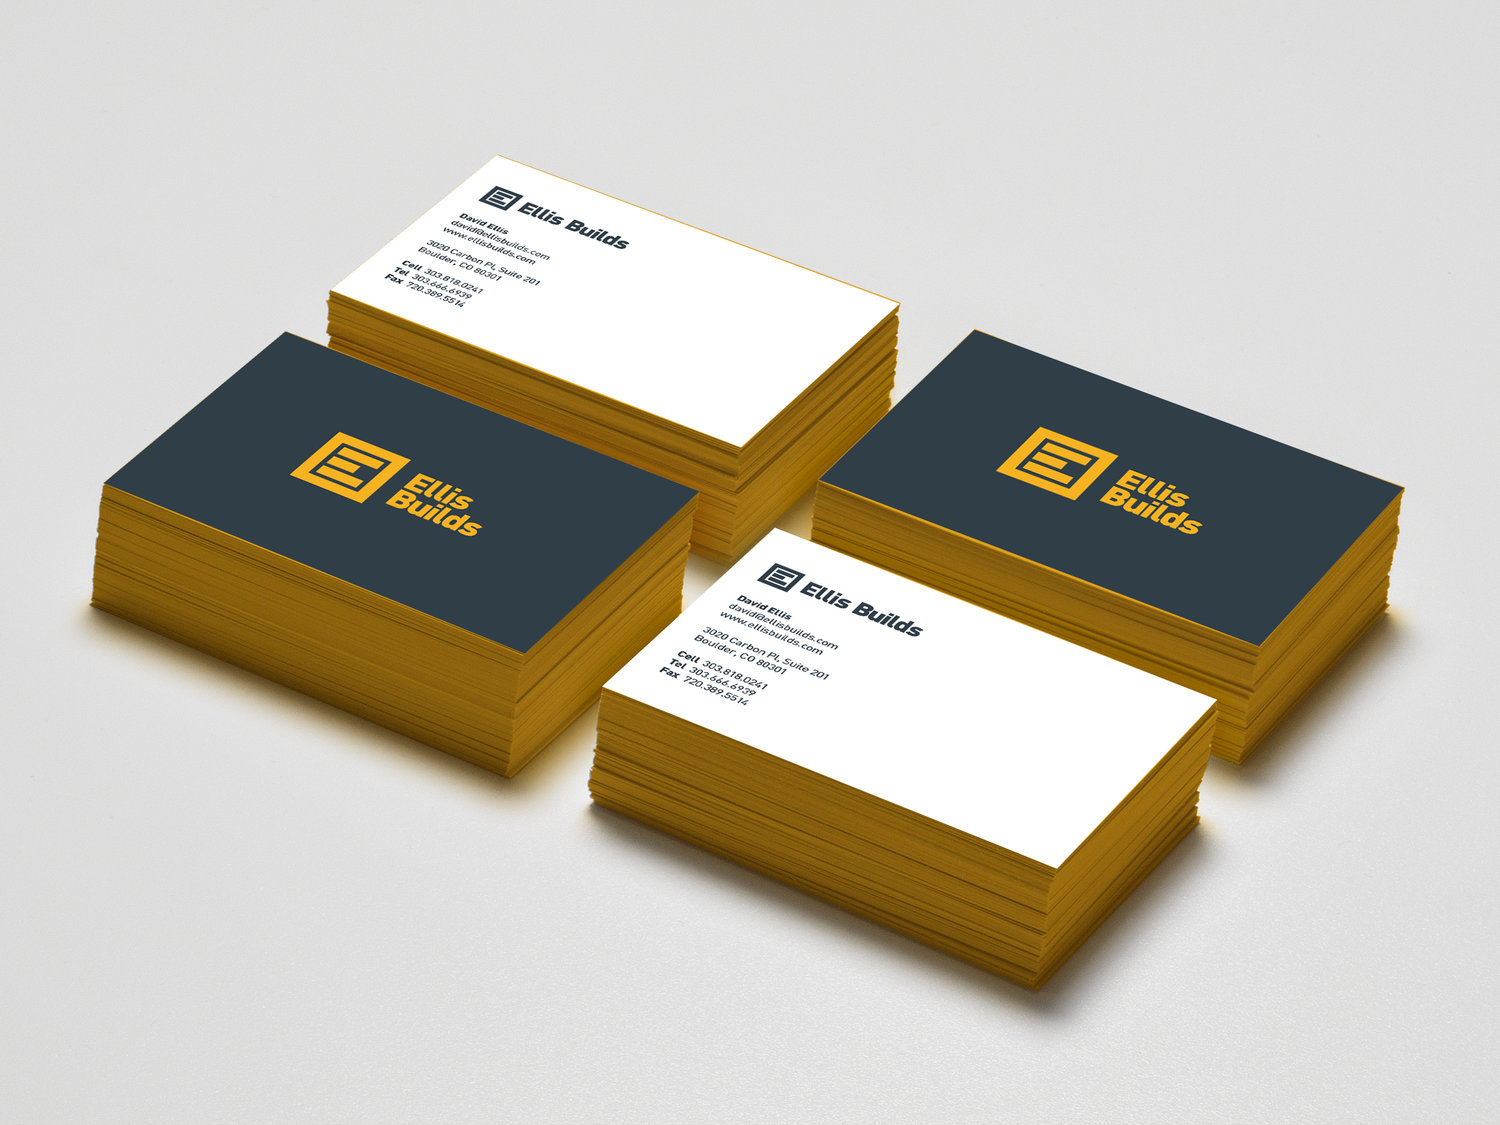 Business card format wiki images card design and card template amazing ns business card photos business card ideas etadamfo ns business card wiki choice image card reheart Choice Image